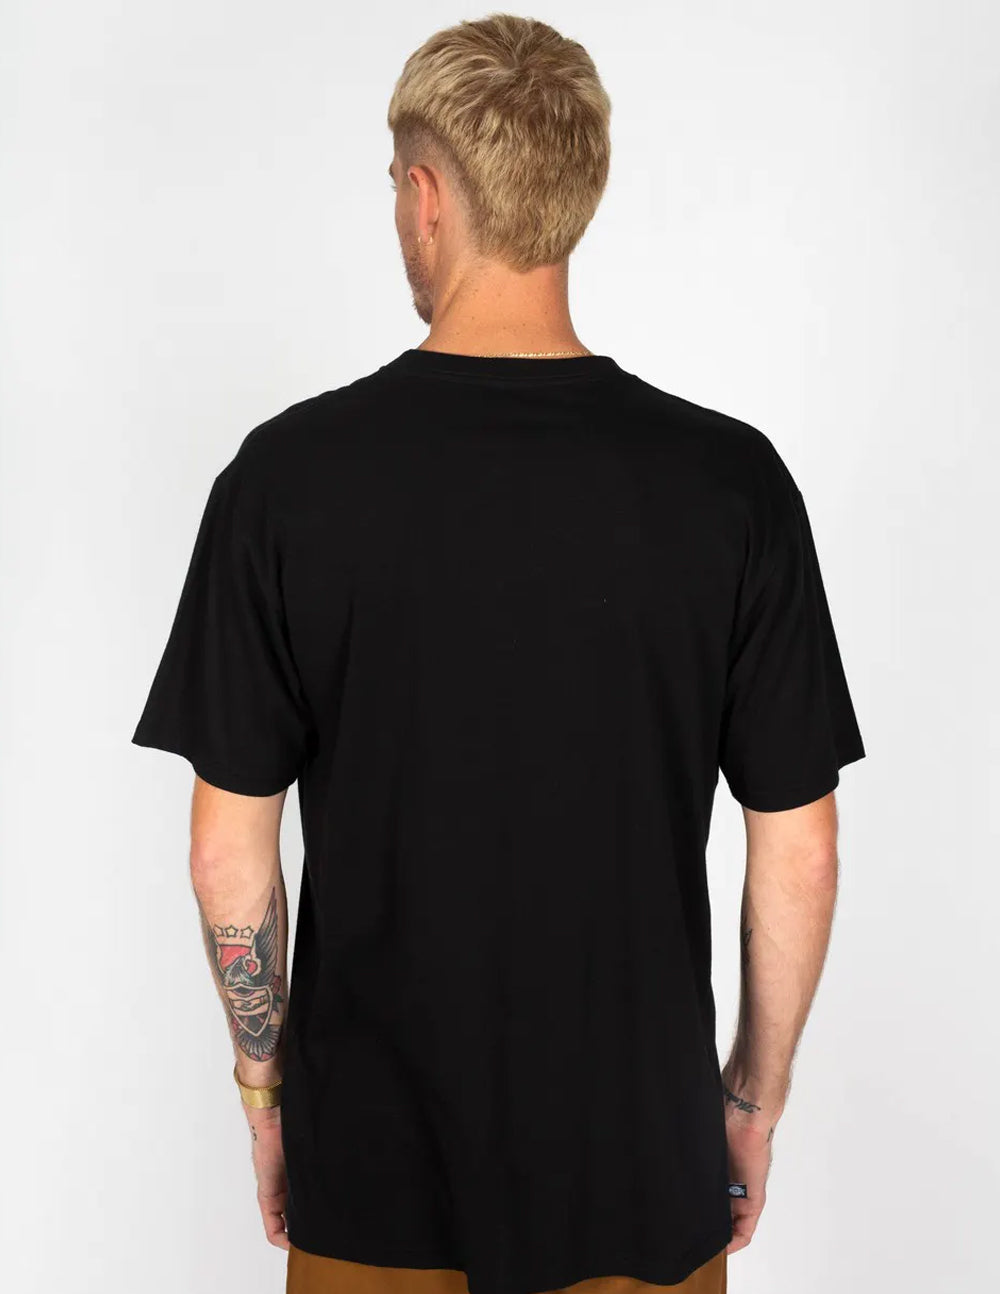 H.S Stinton Classic Fit Tee